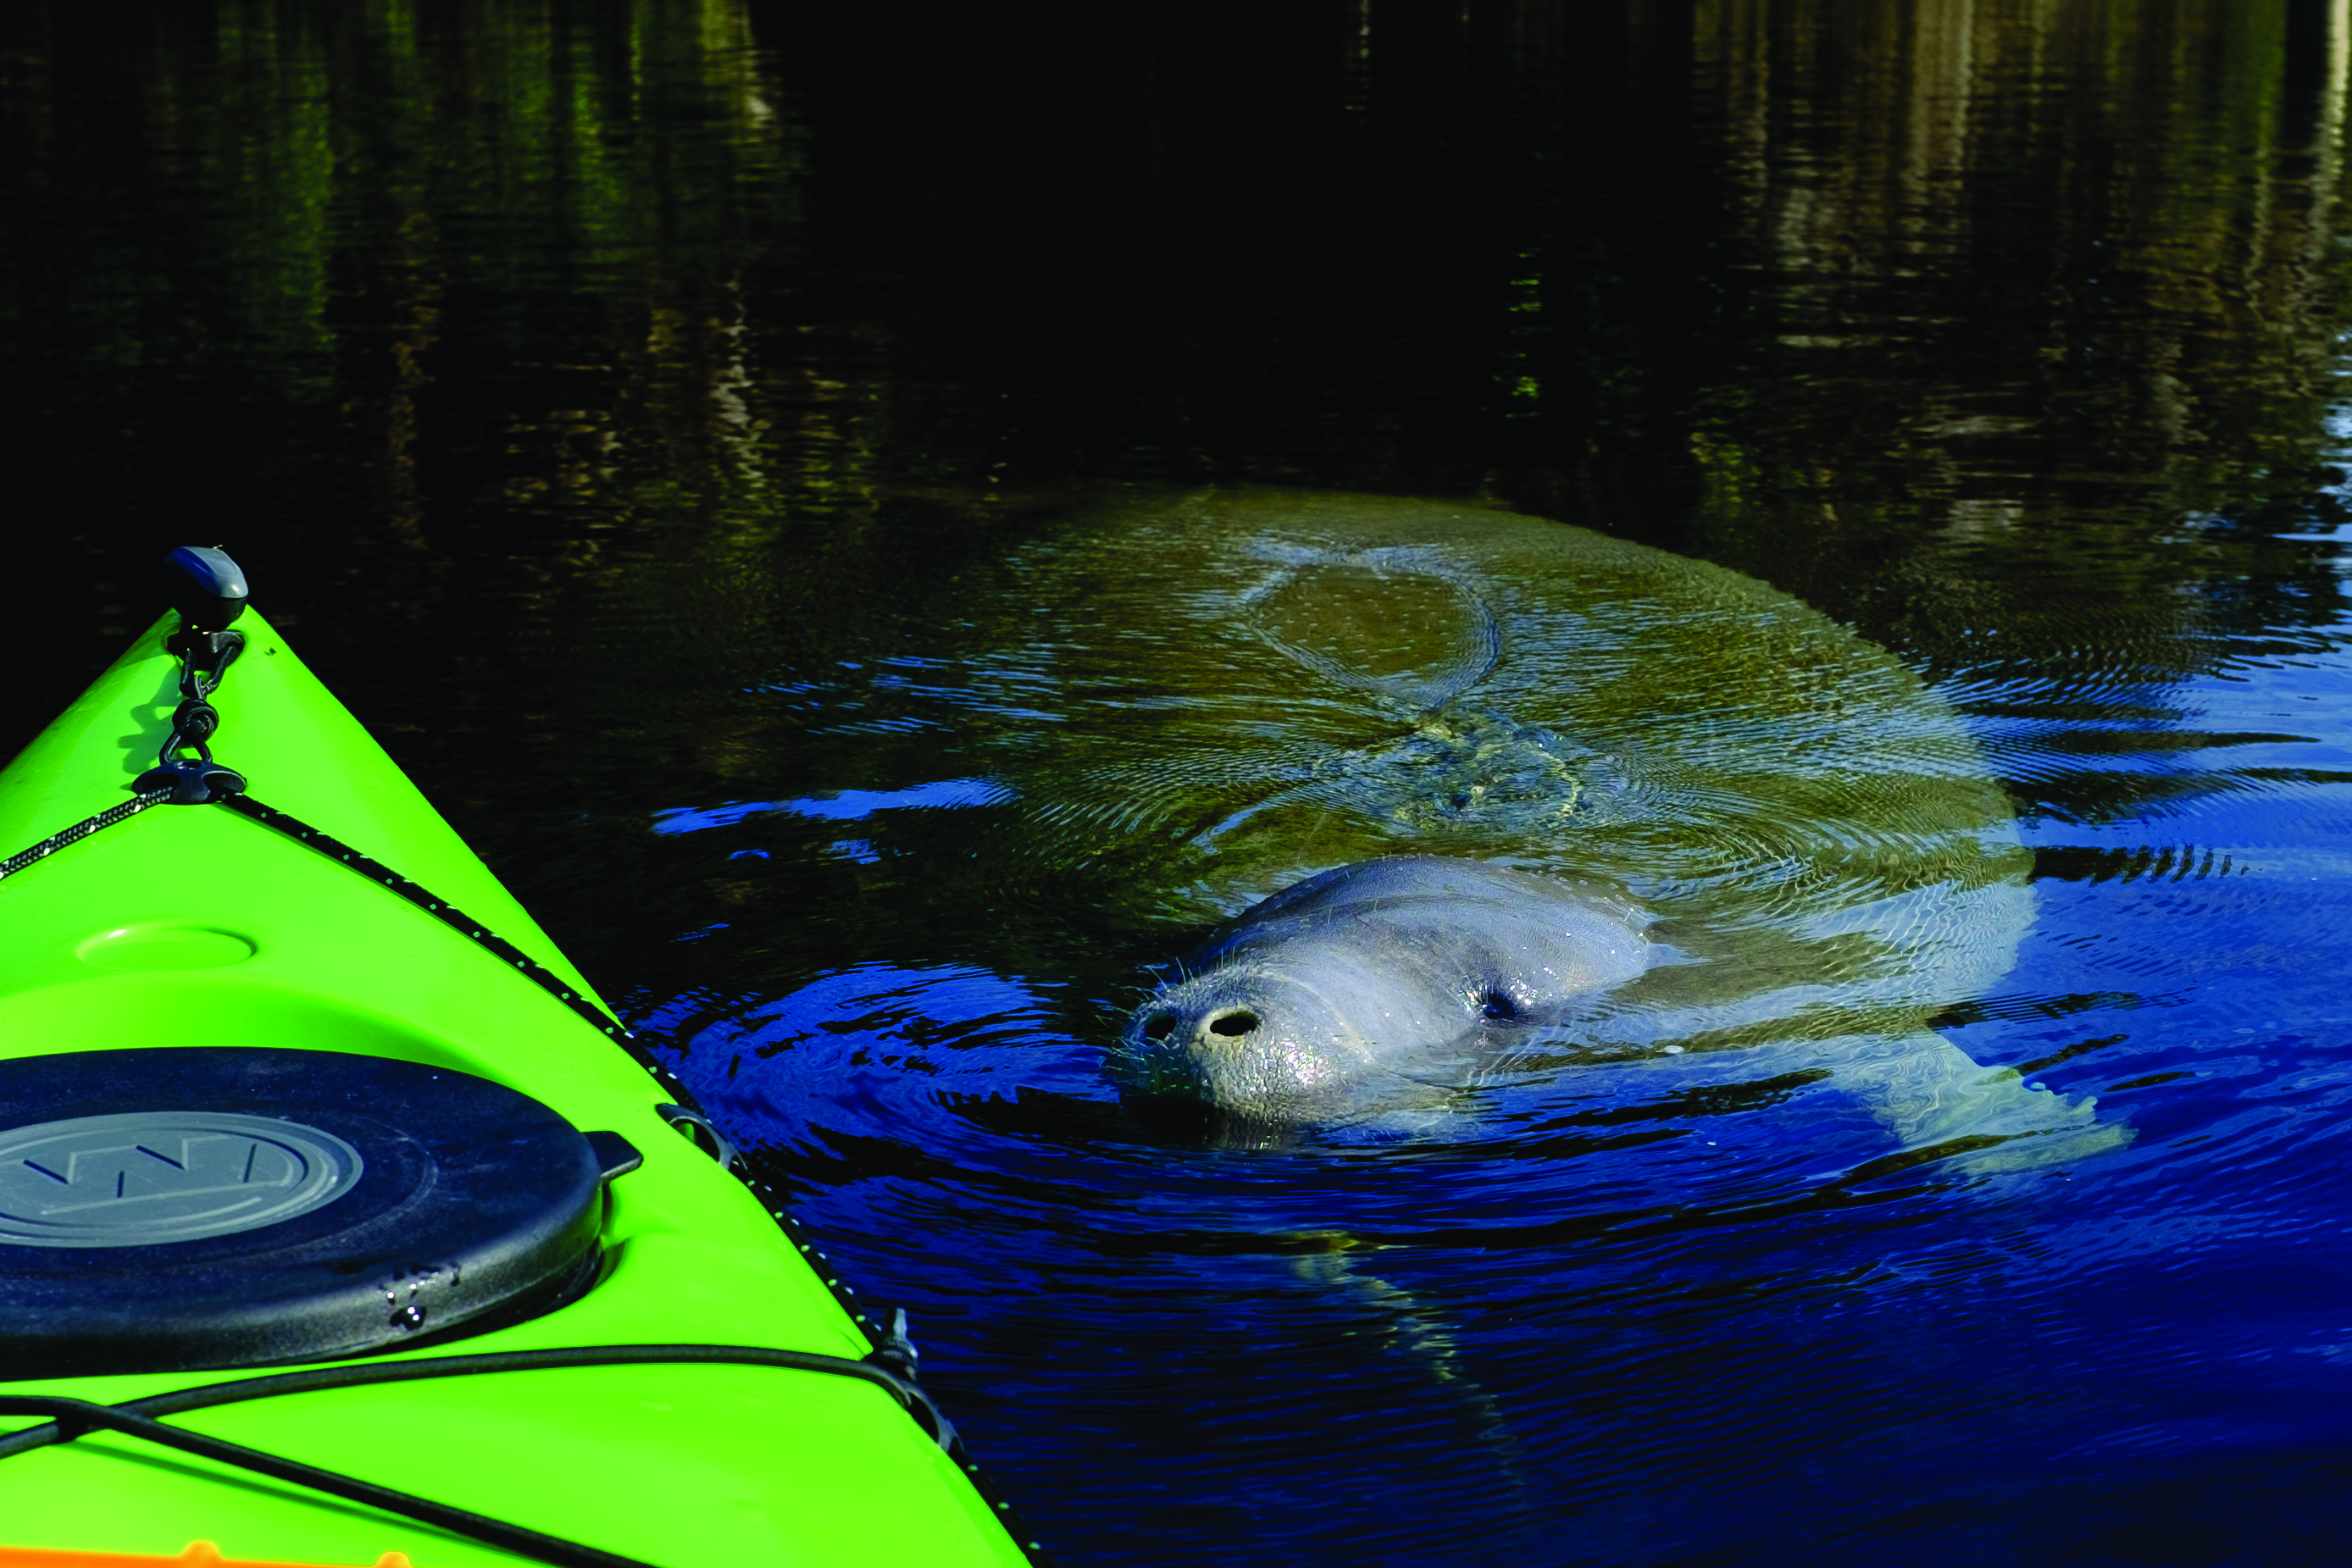 Manatee Swimming close to Kayak